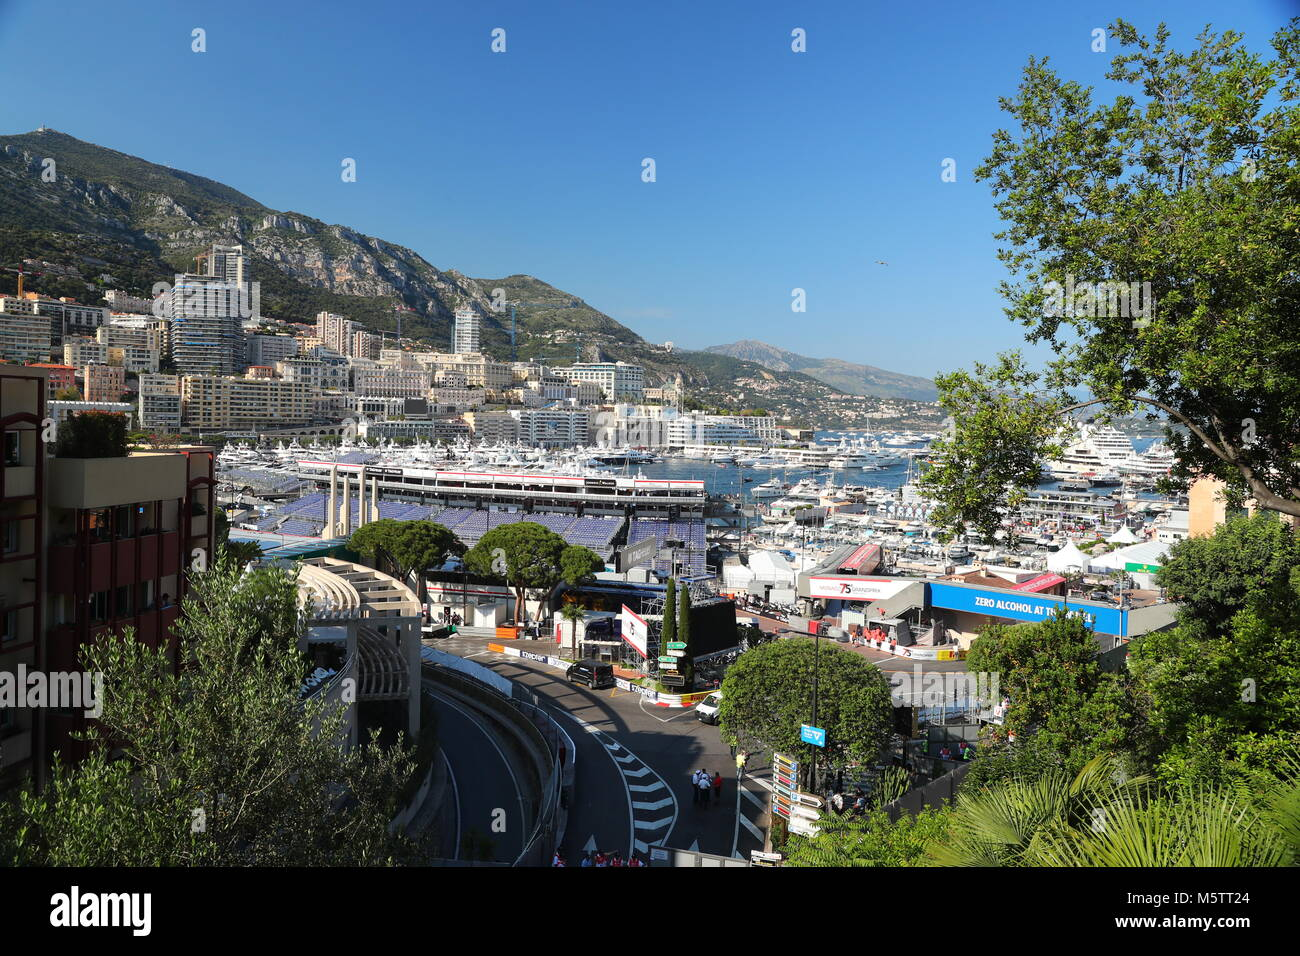 Monaco, Monte-Carlo, 28 May 2017: Port Hercule in time of carrying out race of the Grand Prix Formula 1, a lot of - Stock Image